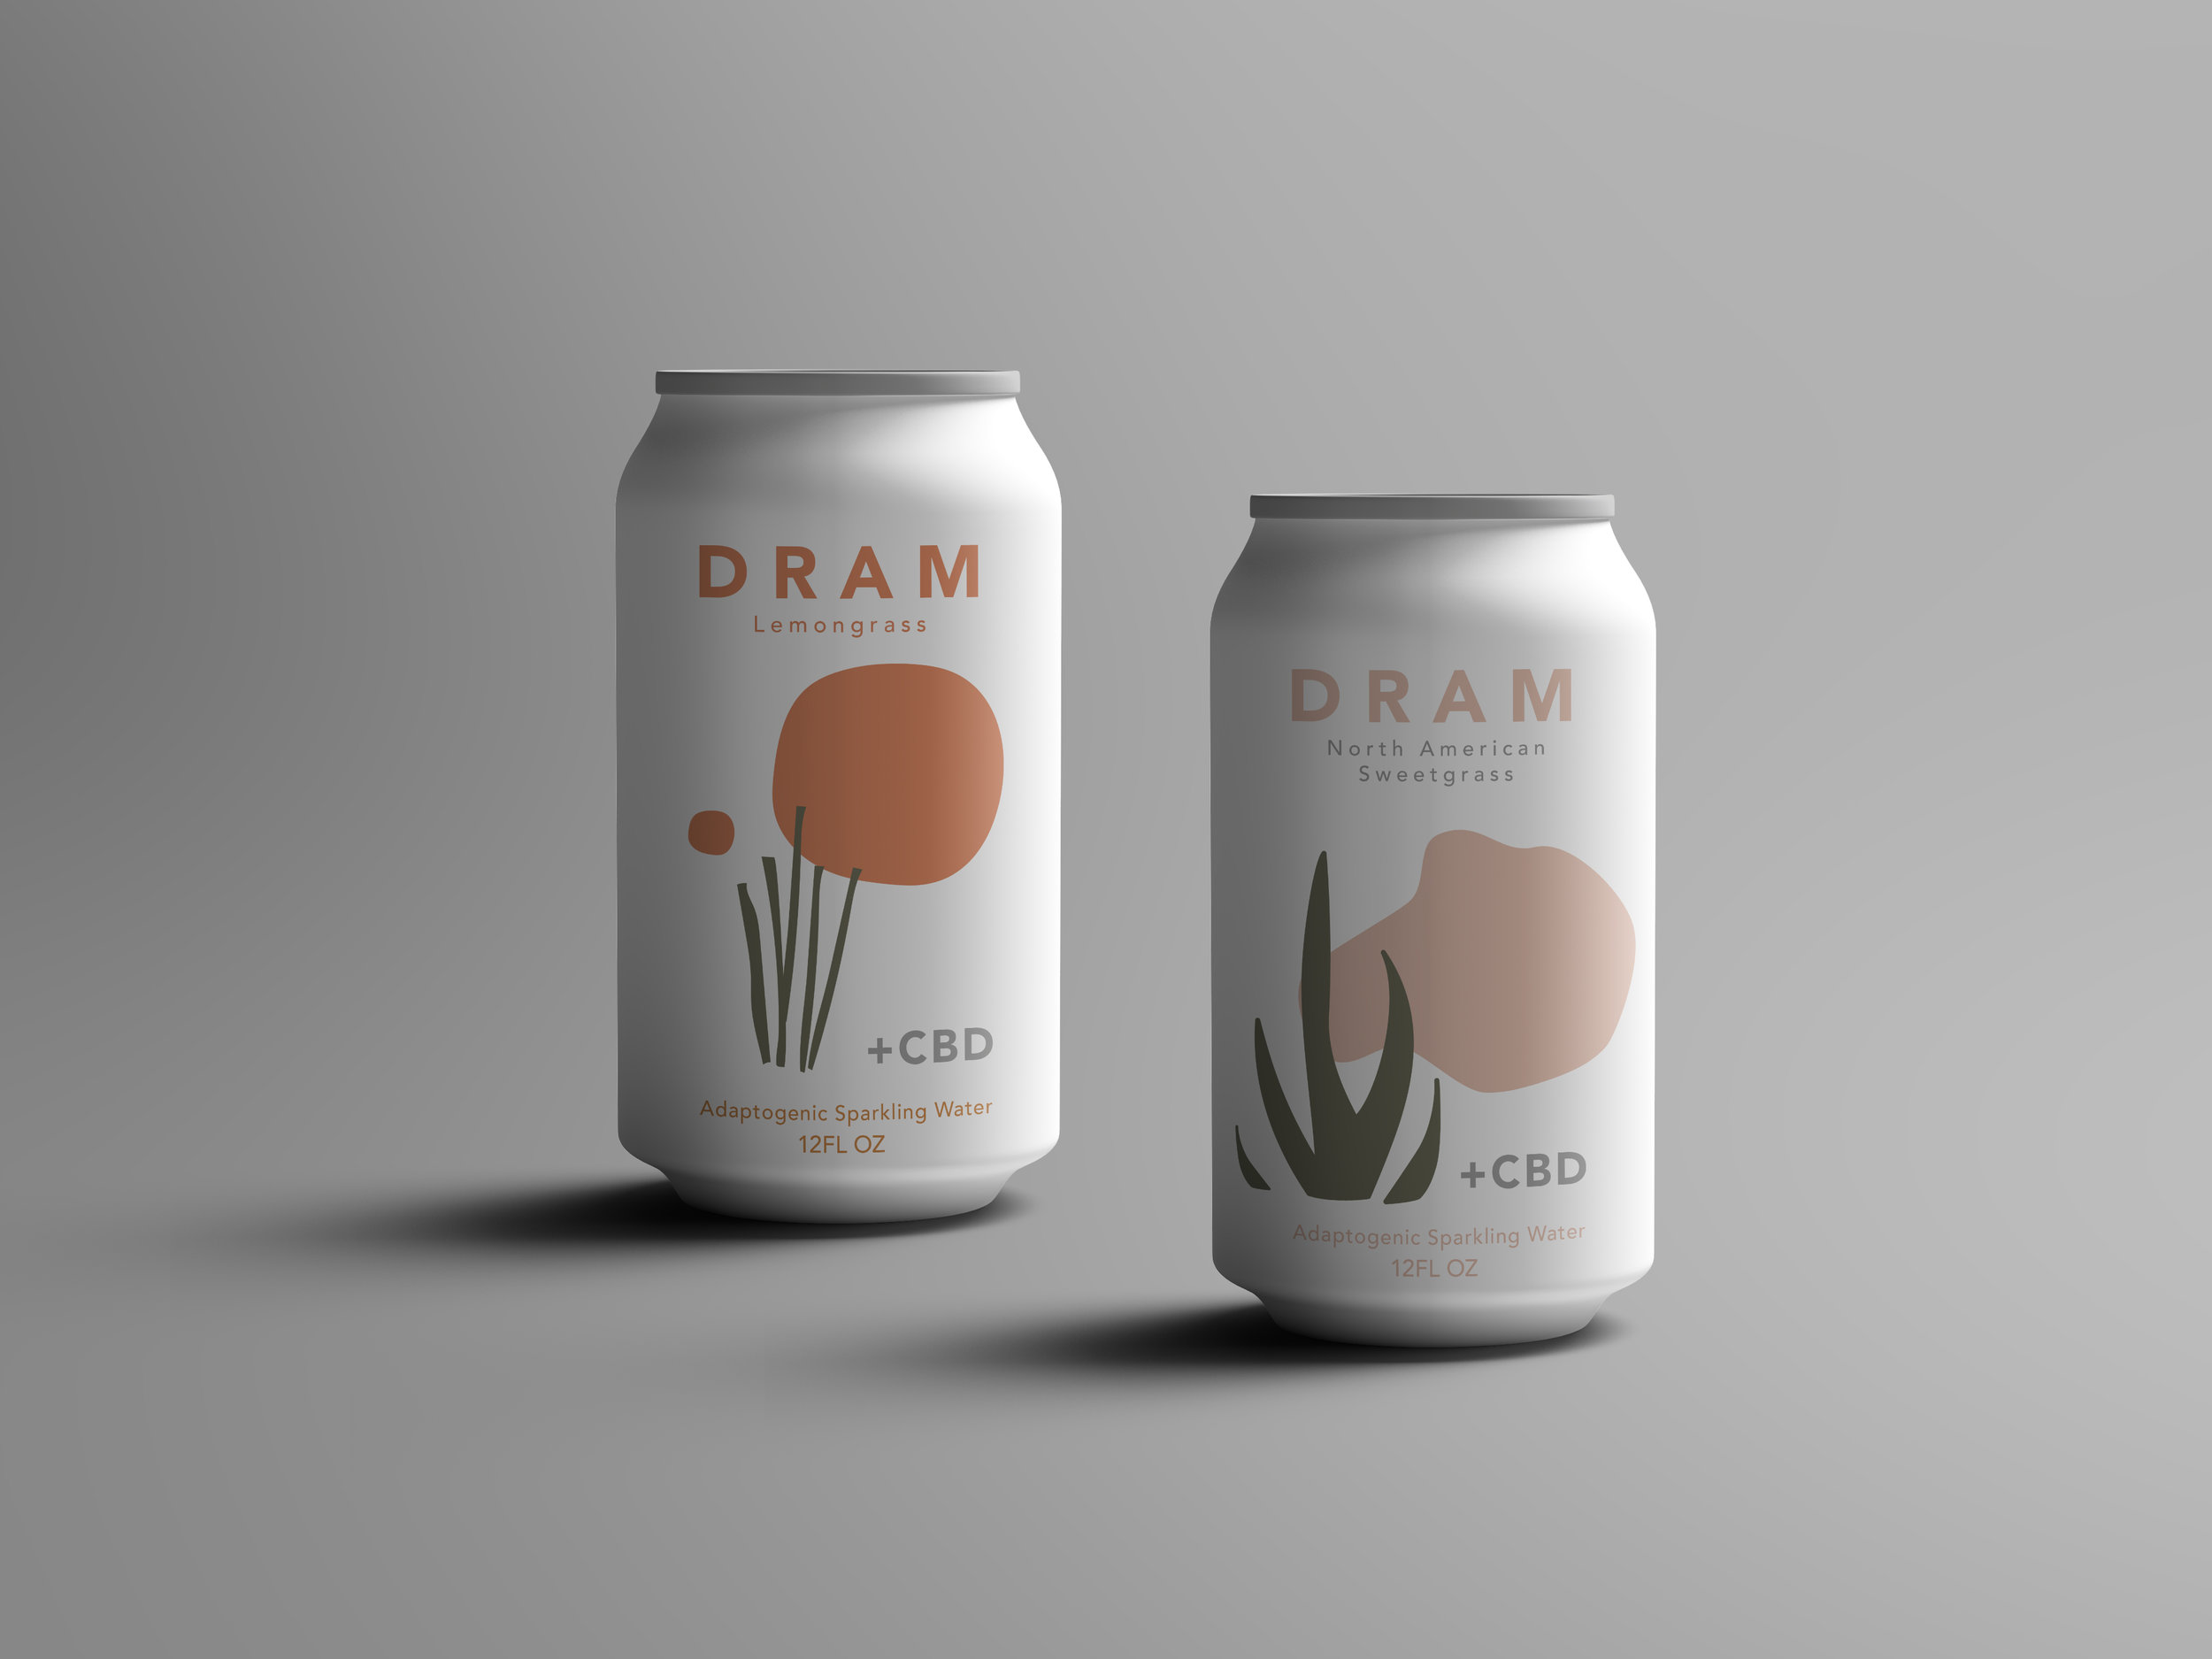 """Dram apothecary - The wild and organically grown ingredients inDRAM Apothecary's new Adaptogen CBD Sparkling Waters """"may assist the body in adapting to the stressors of human life while promoting long term resilience of body, mind and spirit"""", but the no sugar and no calories makes it the perfect spring drink to sip and stress less.dramdose.com @dramapothecary"""